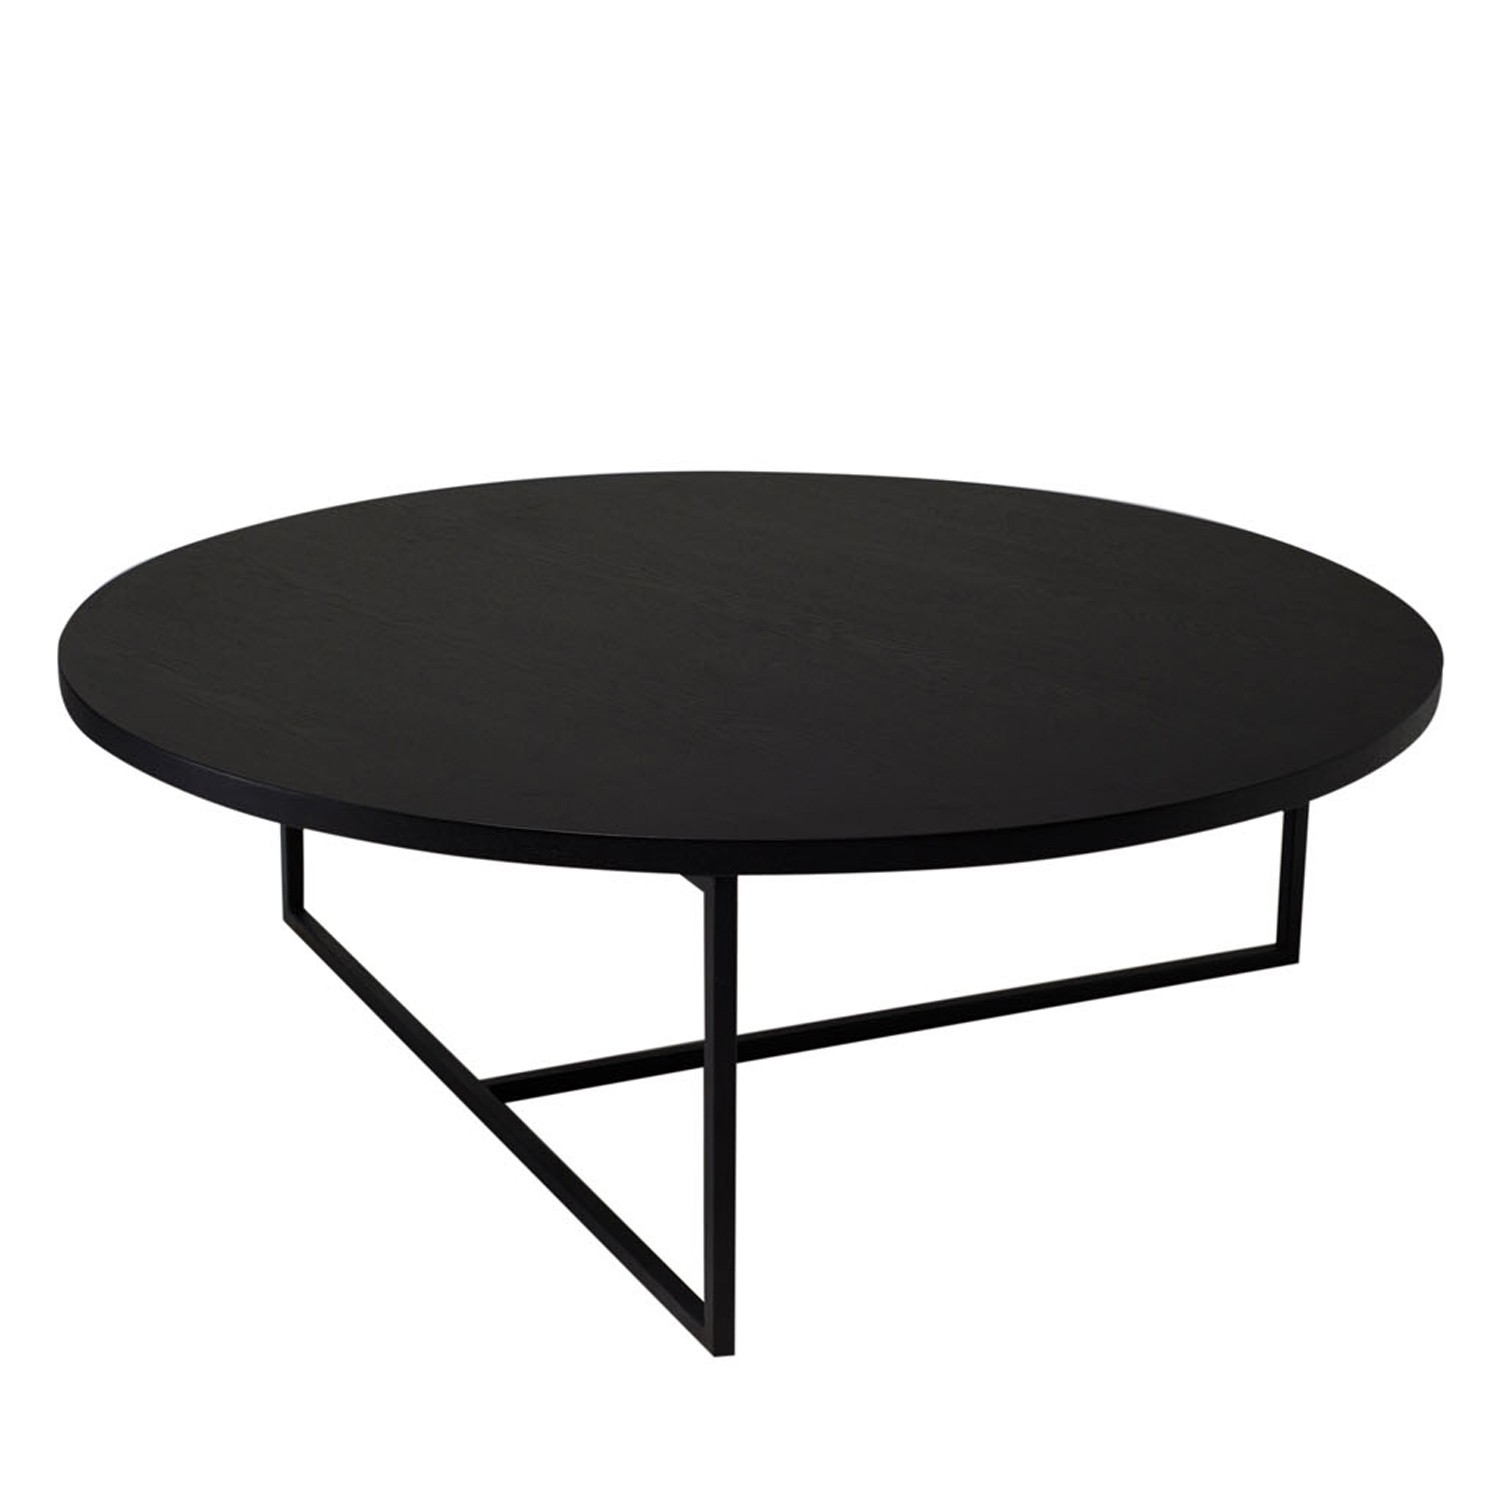 Runder Couchtisch Schwarz 2018 Popular Black Round Coffee Tables With Storage